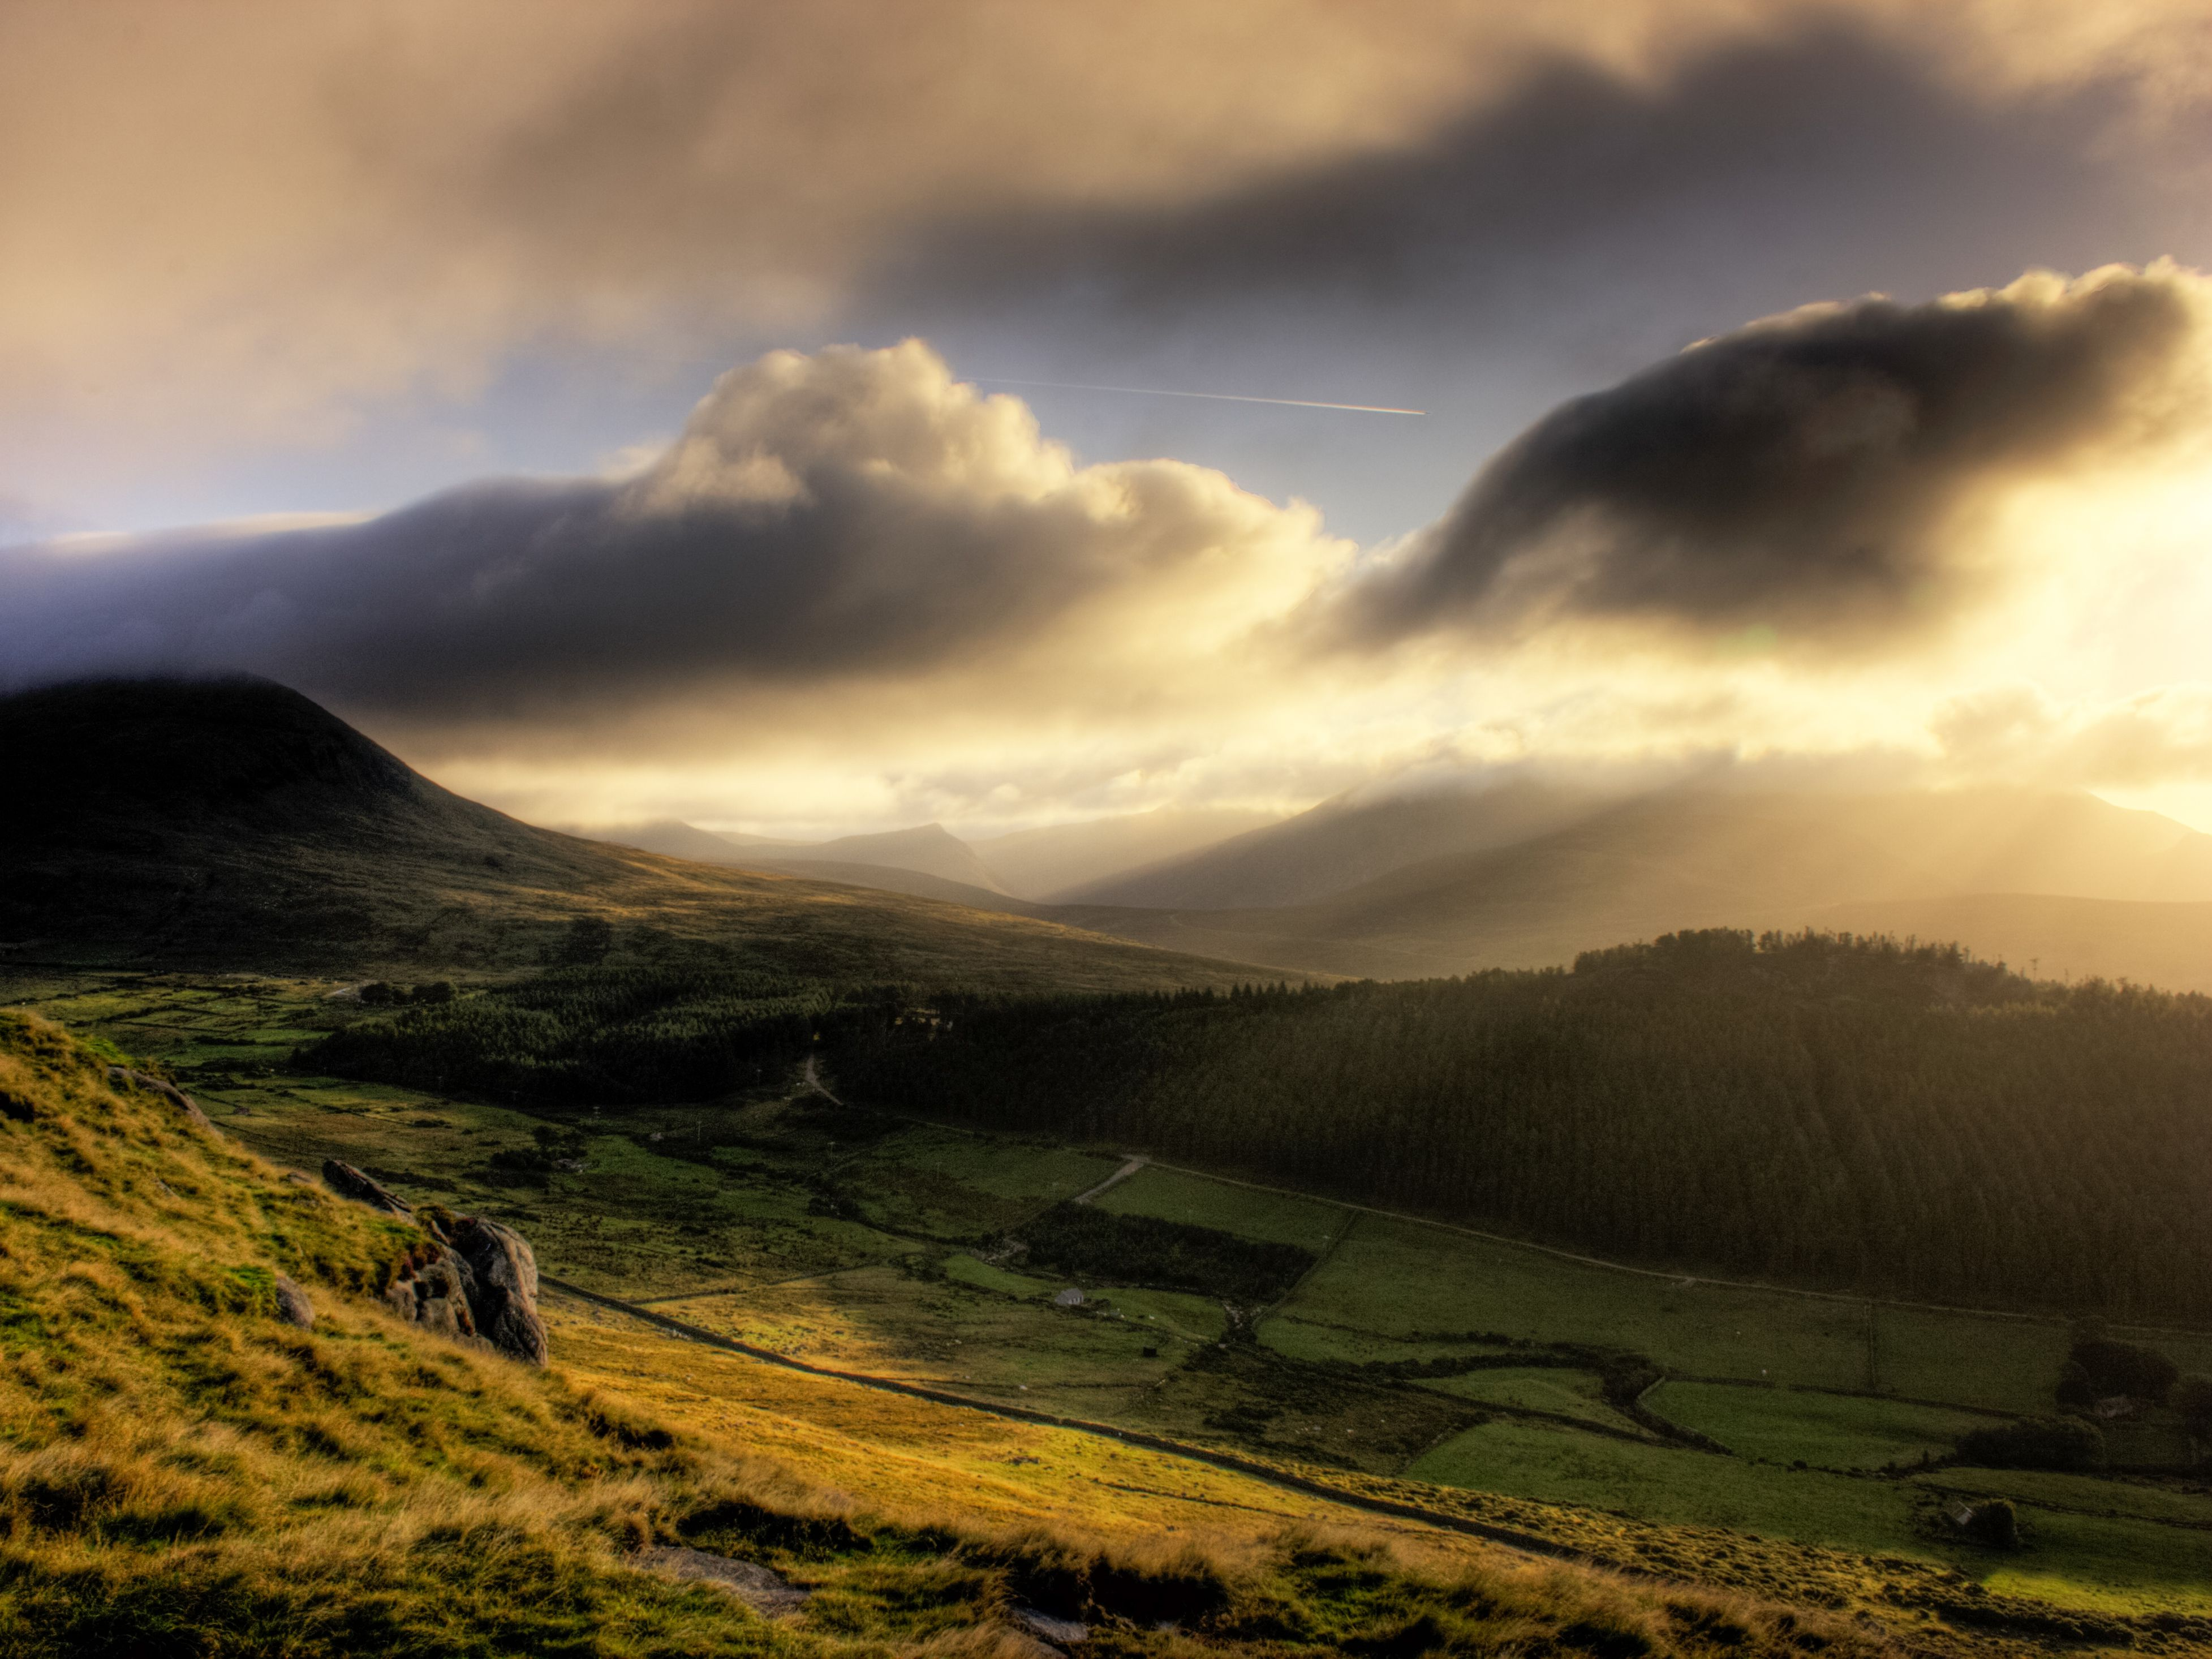 Sunrise over the Mourne Mountains in Northern Ireland